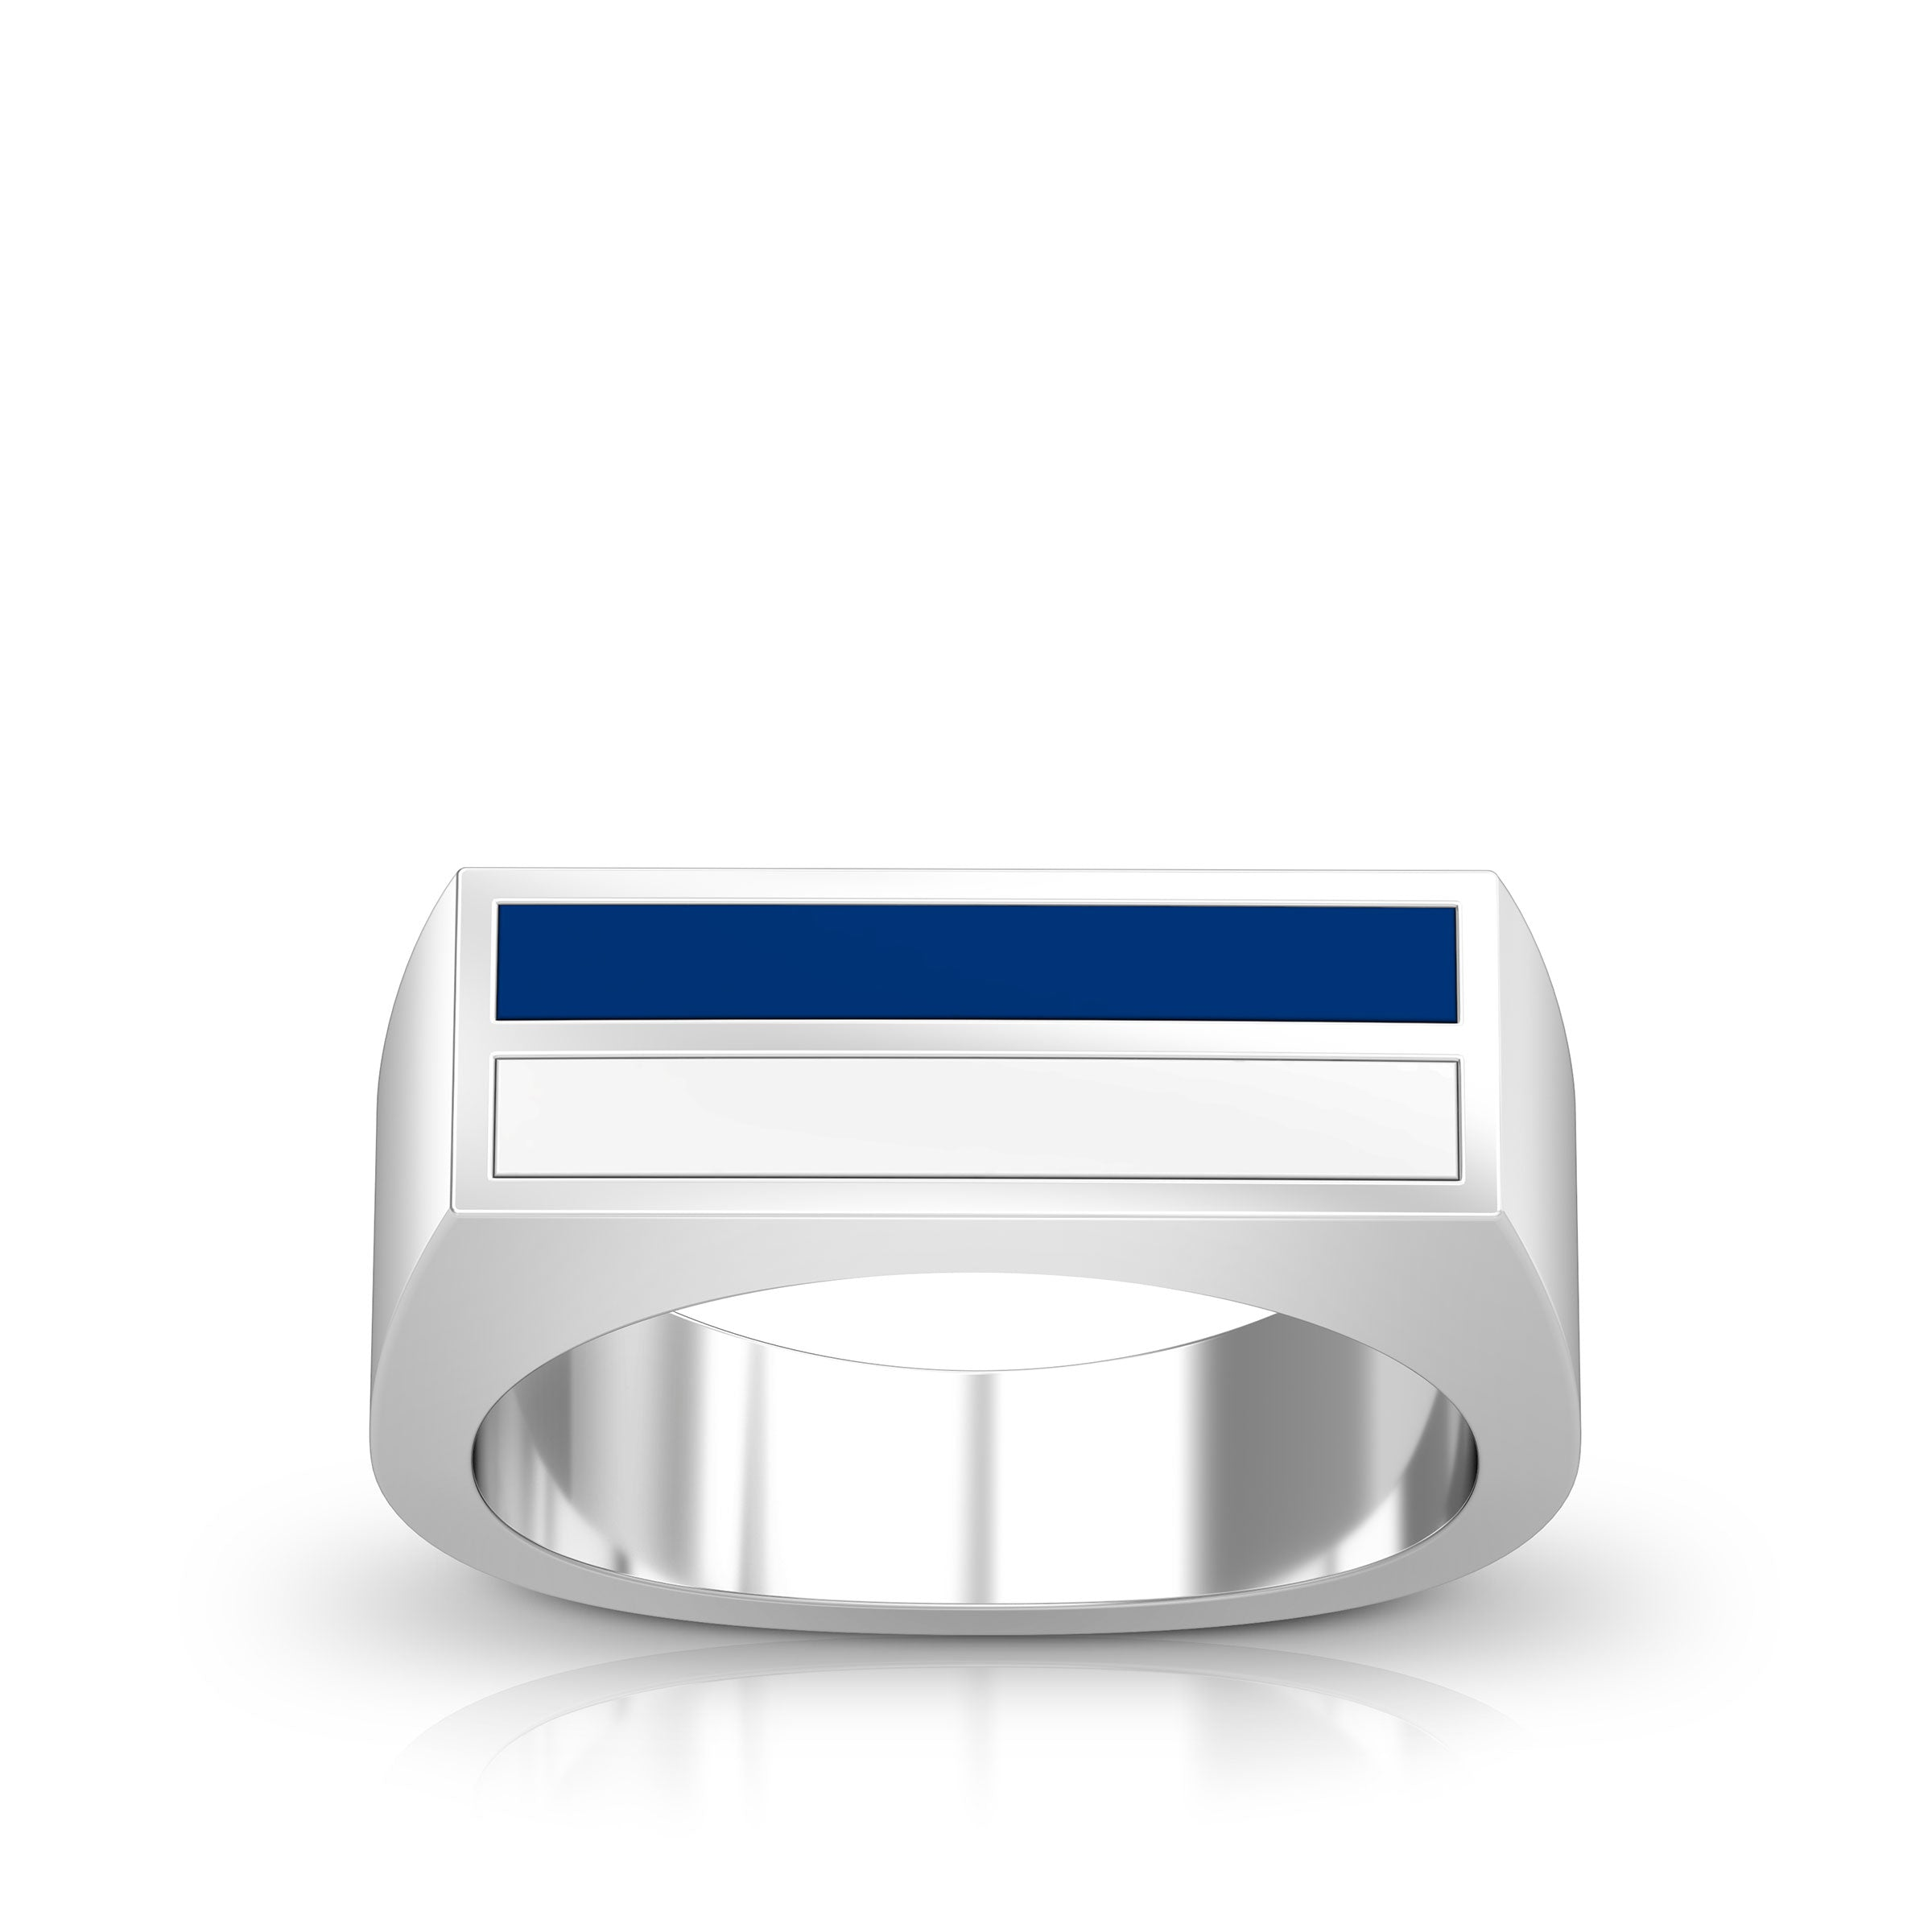 Enamel Ring in Blue and White Size 10